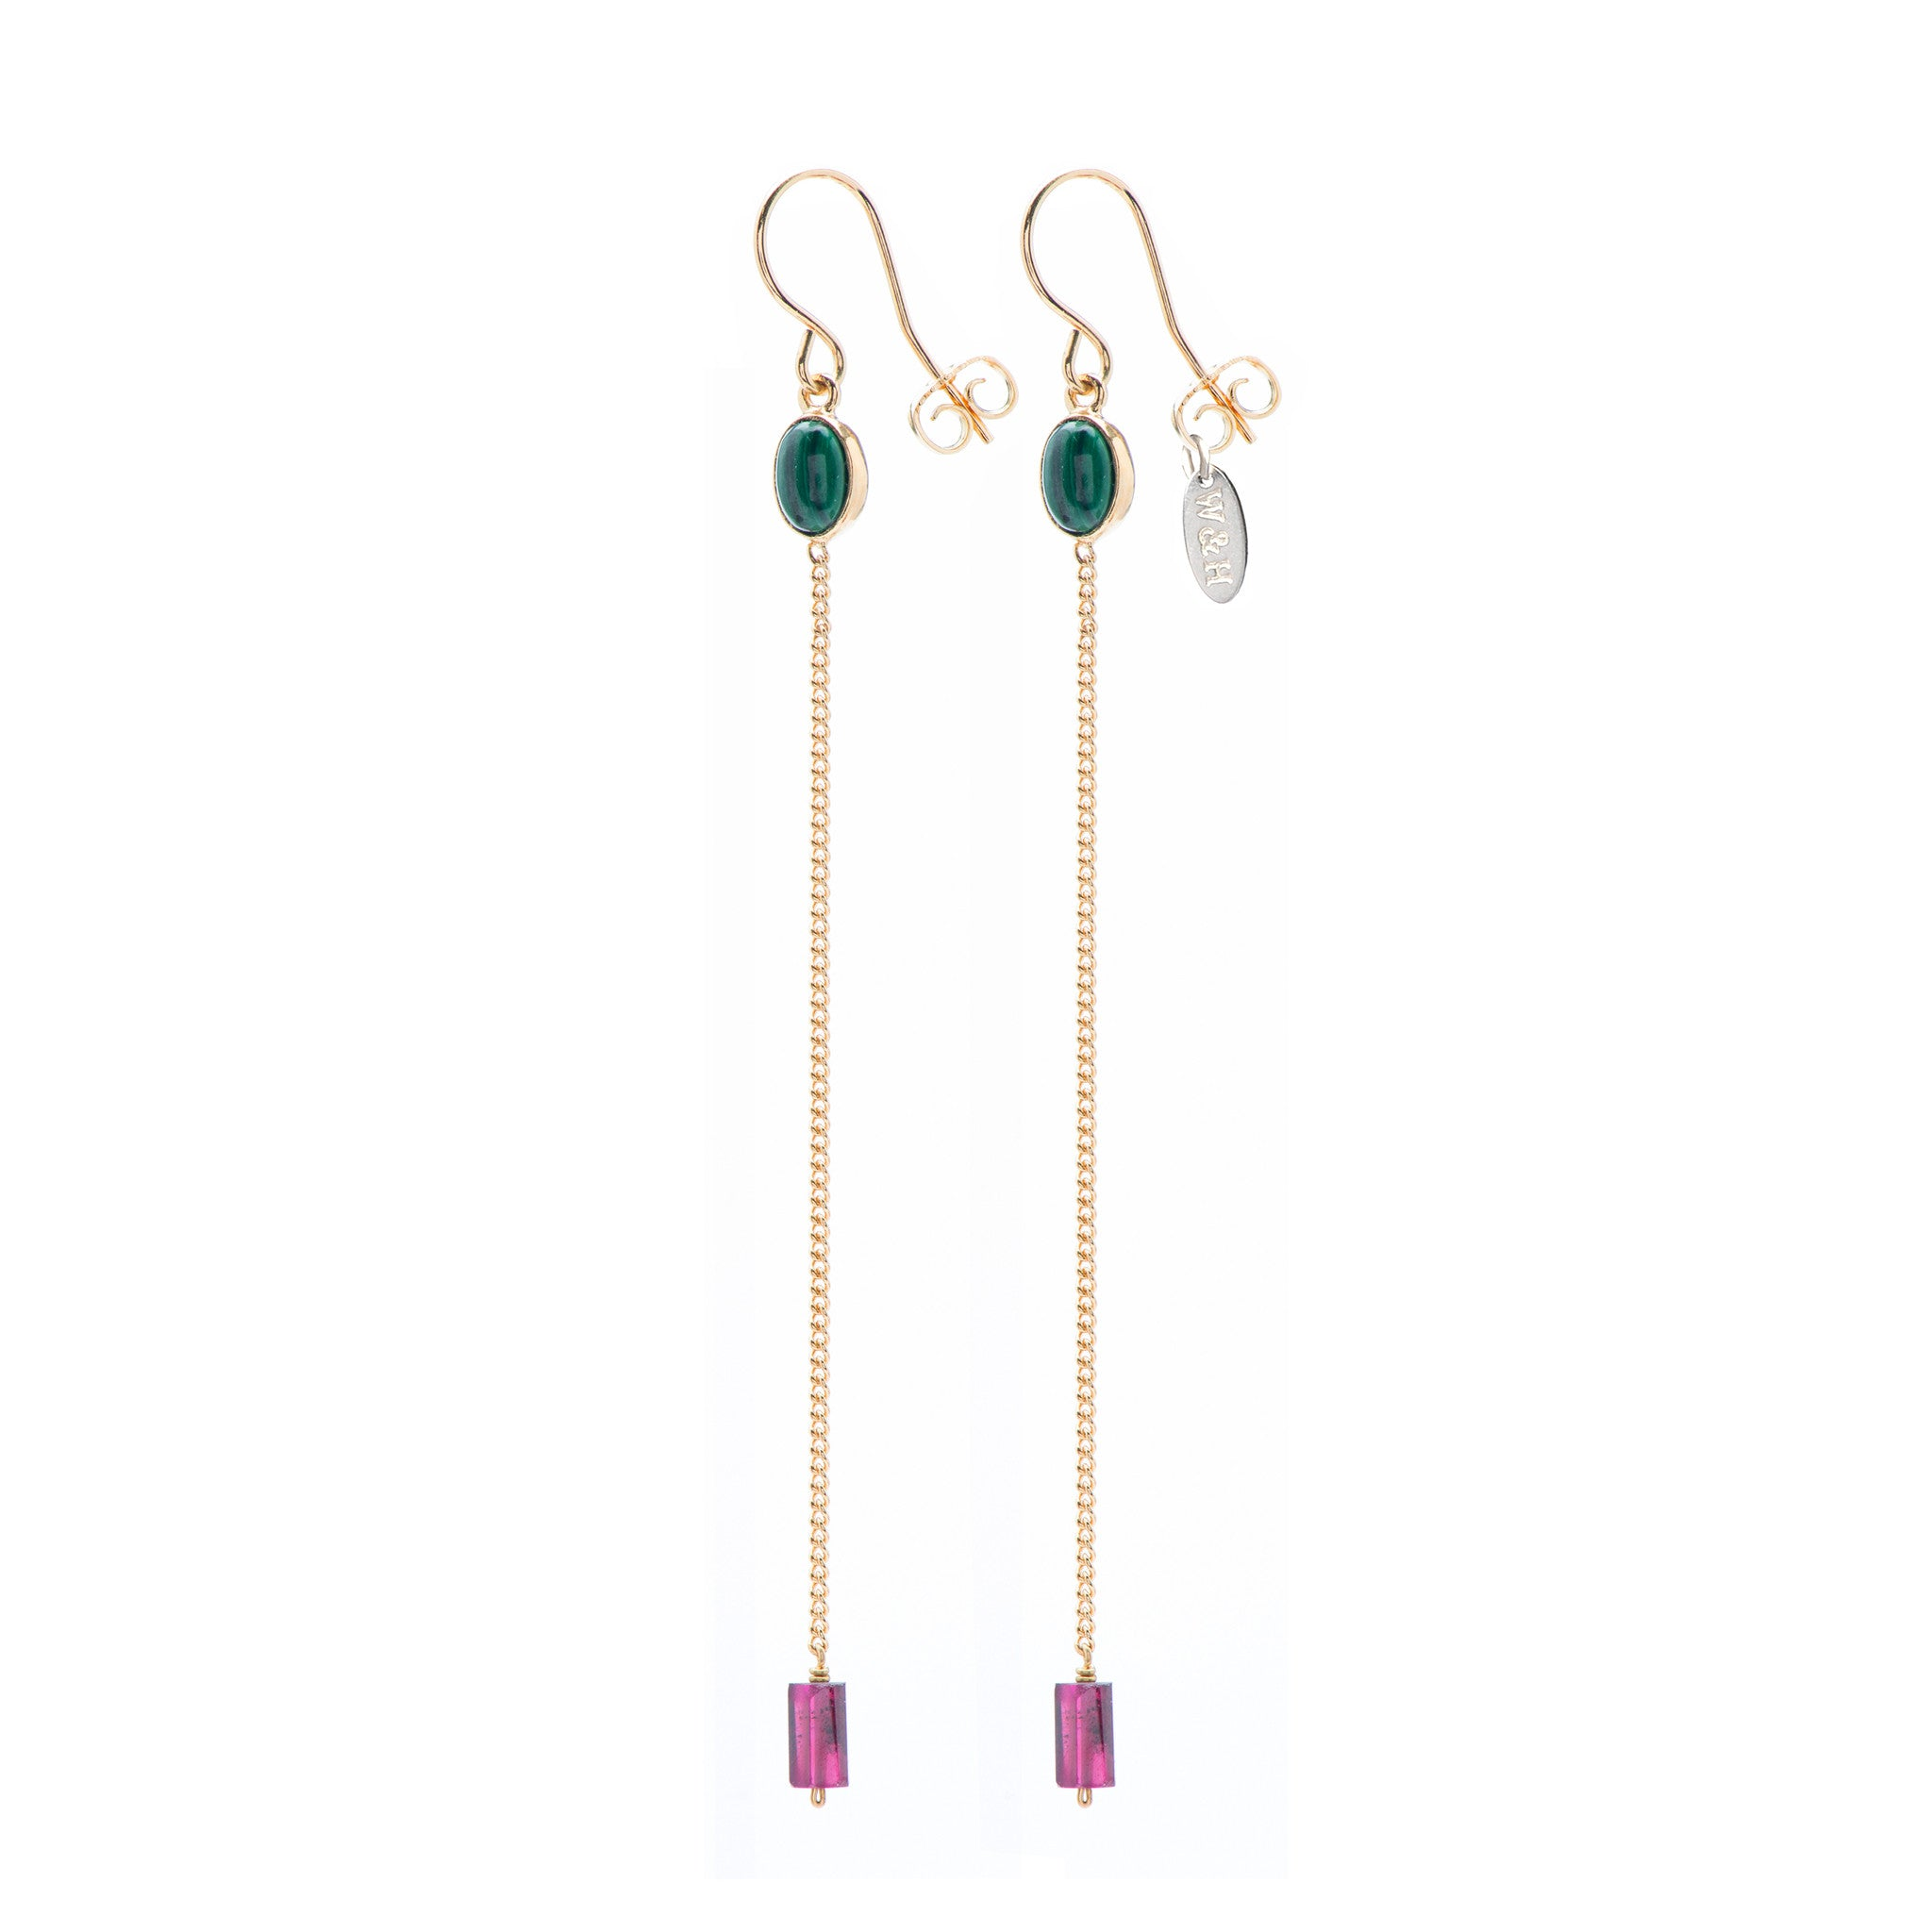 Hook Earrings with Malachite and Garnet